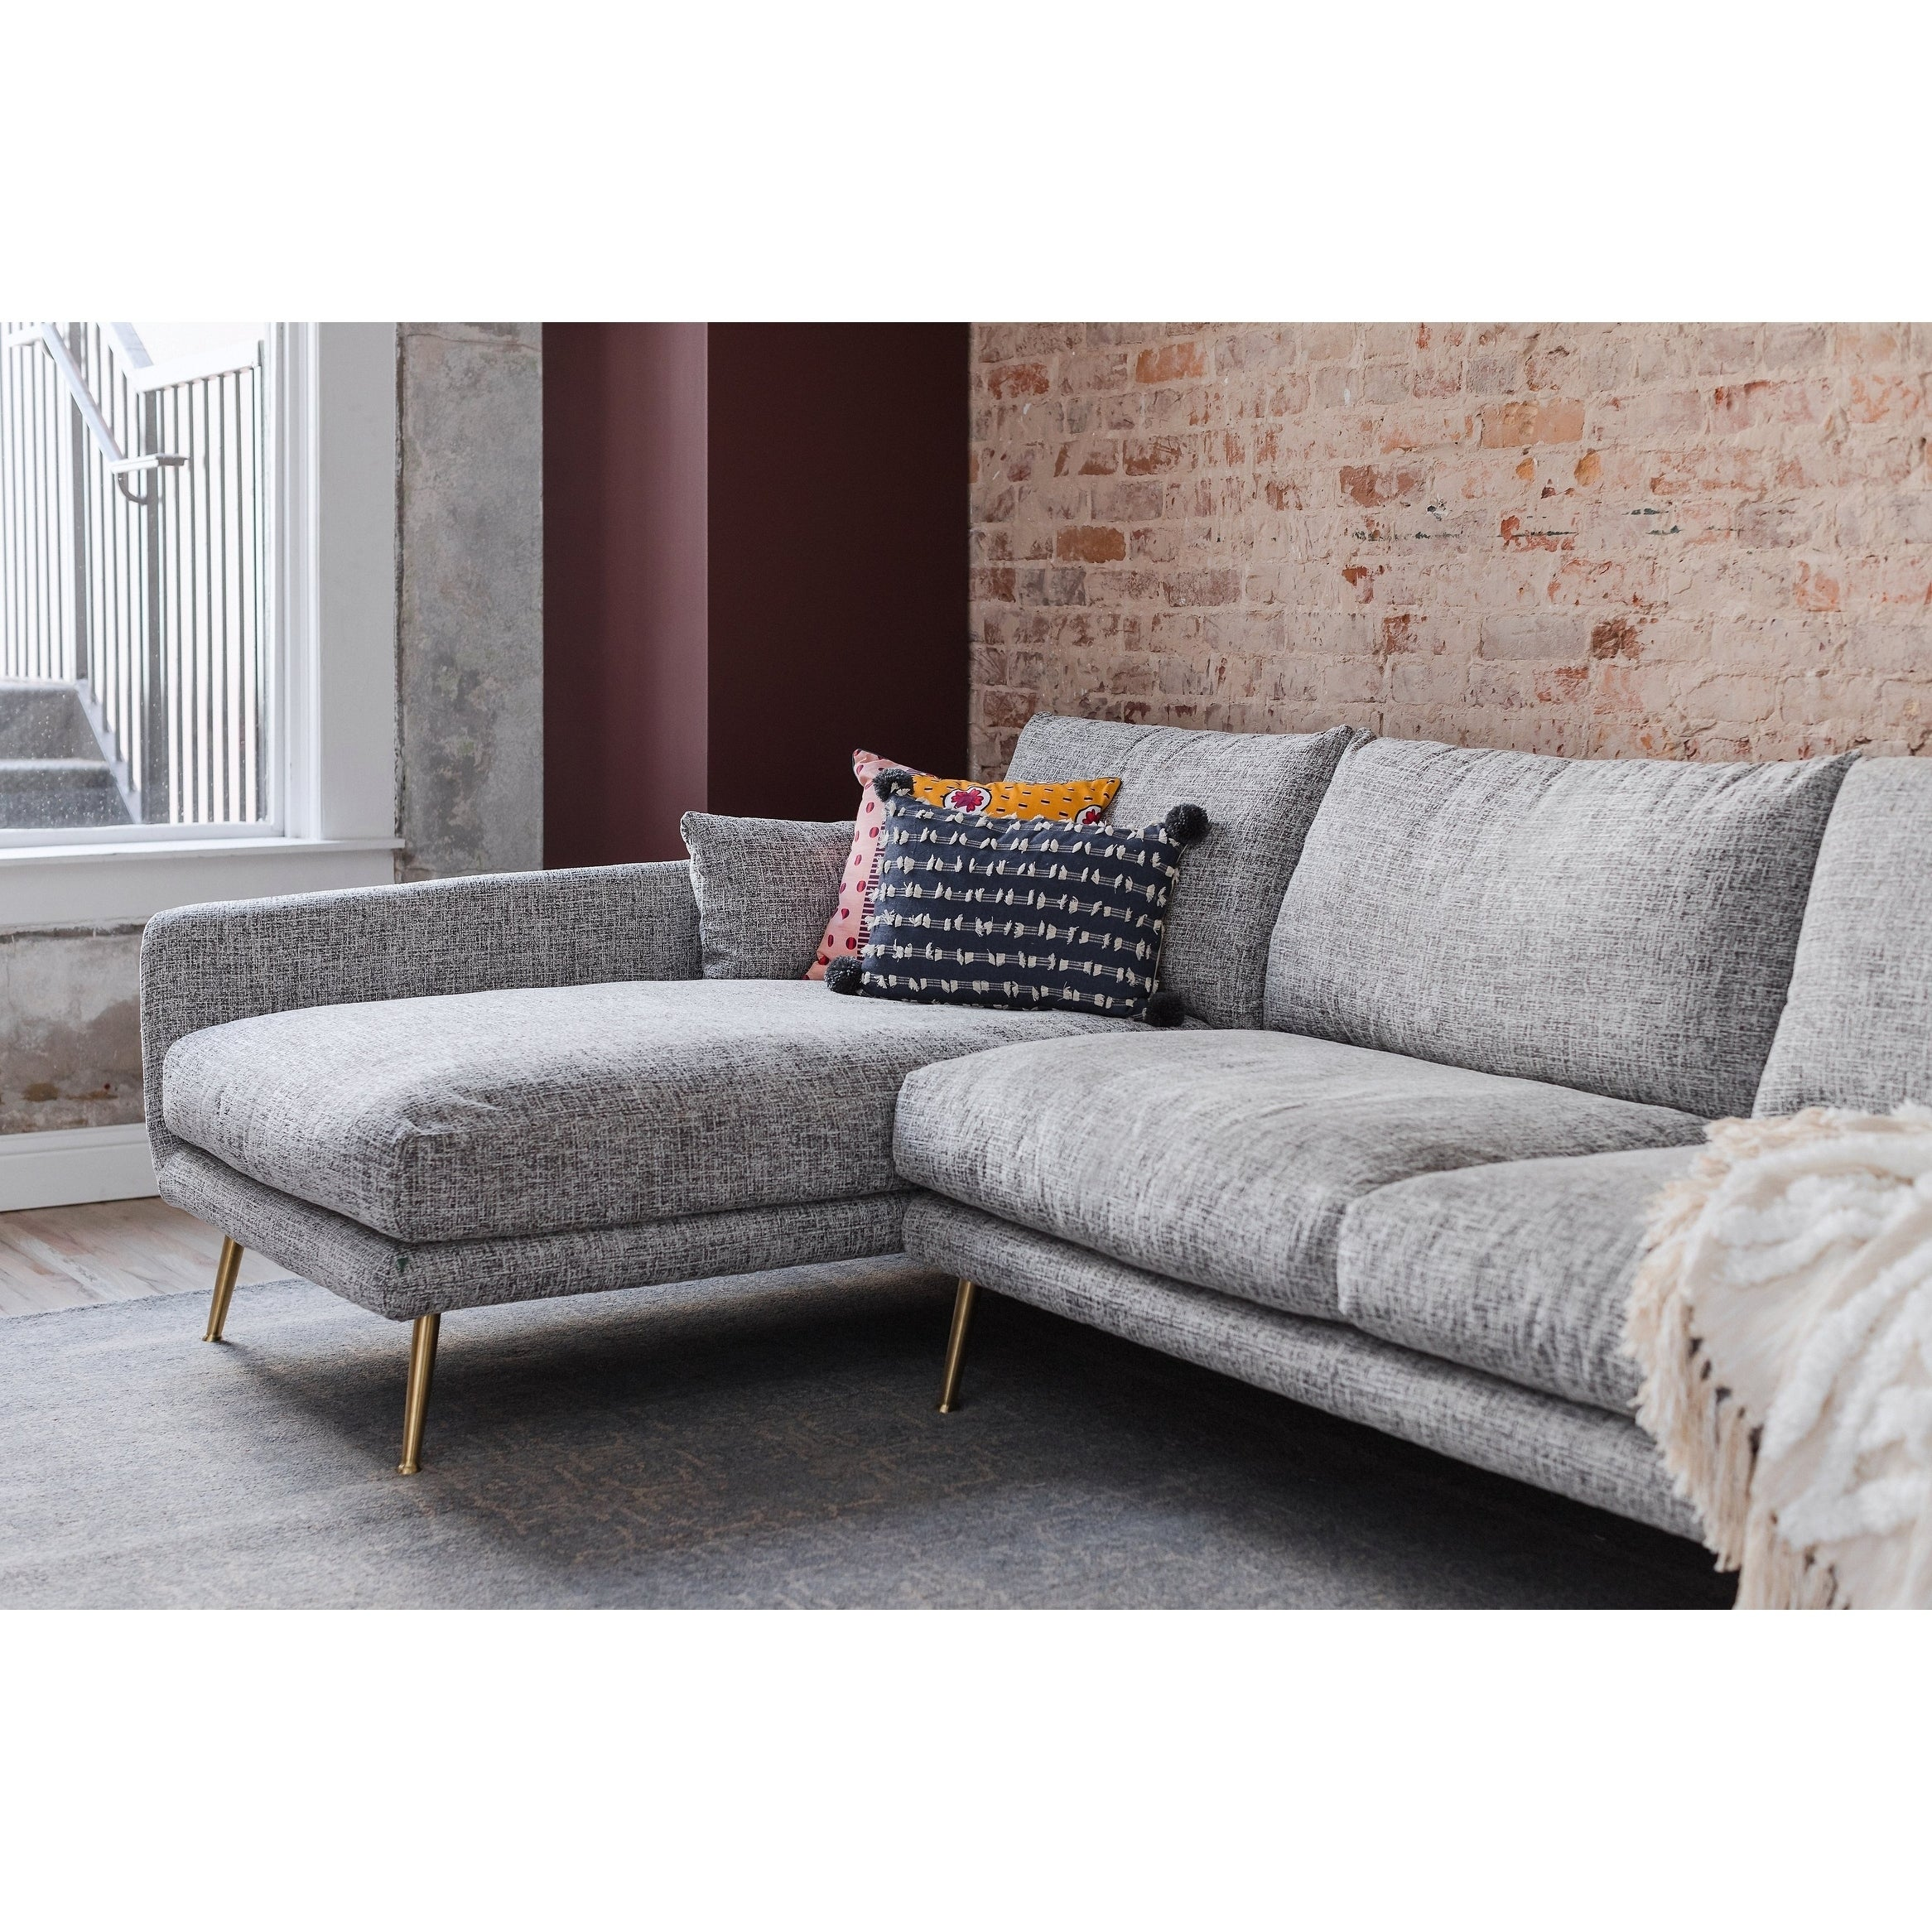 Hayley Upholstered Mid Century Modern Sectional Sofa